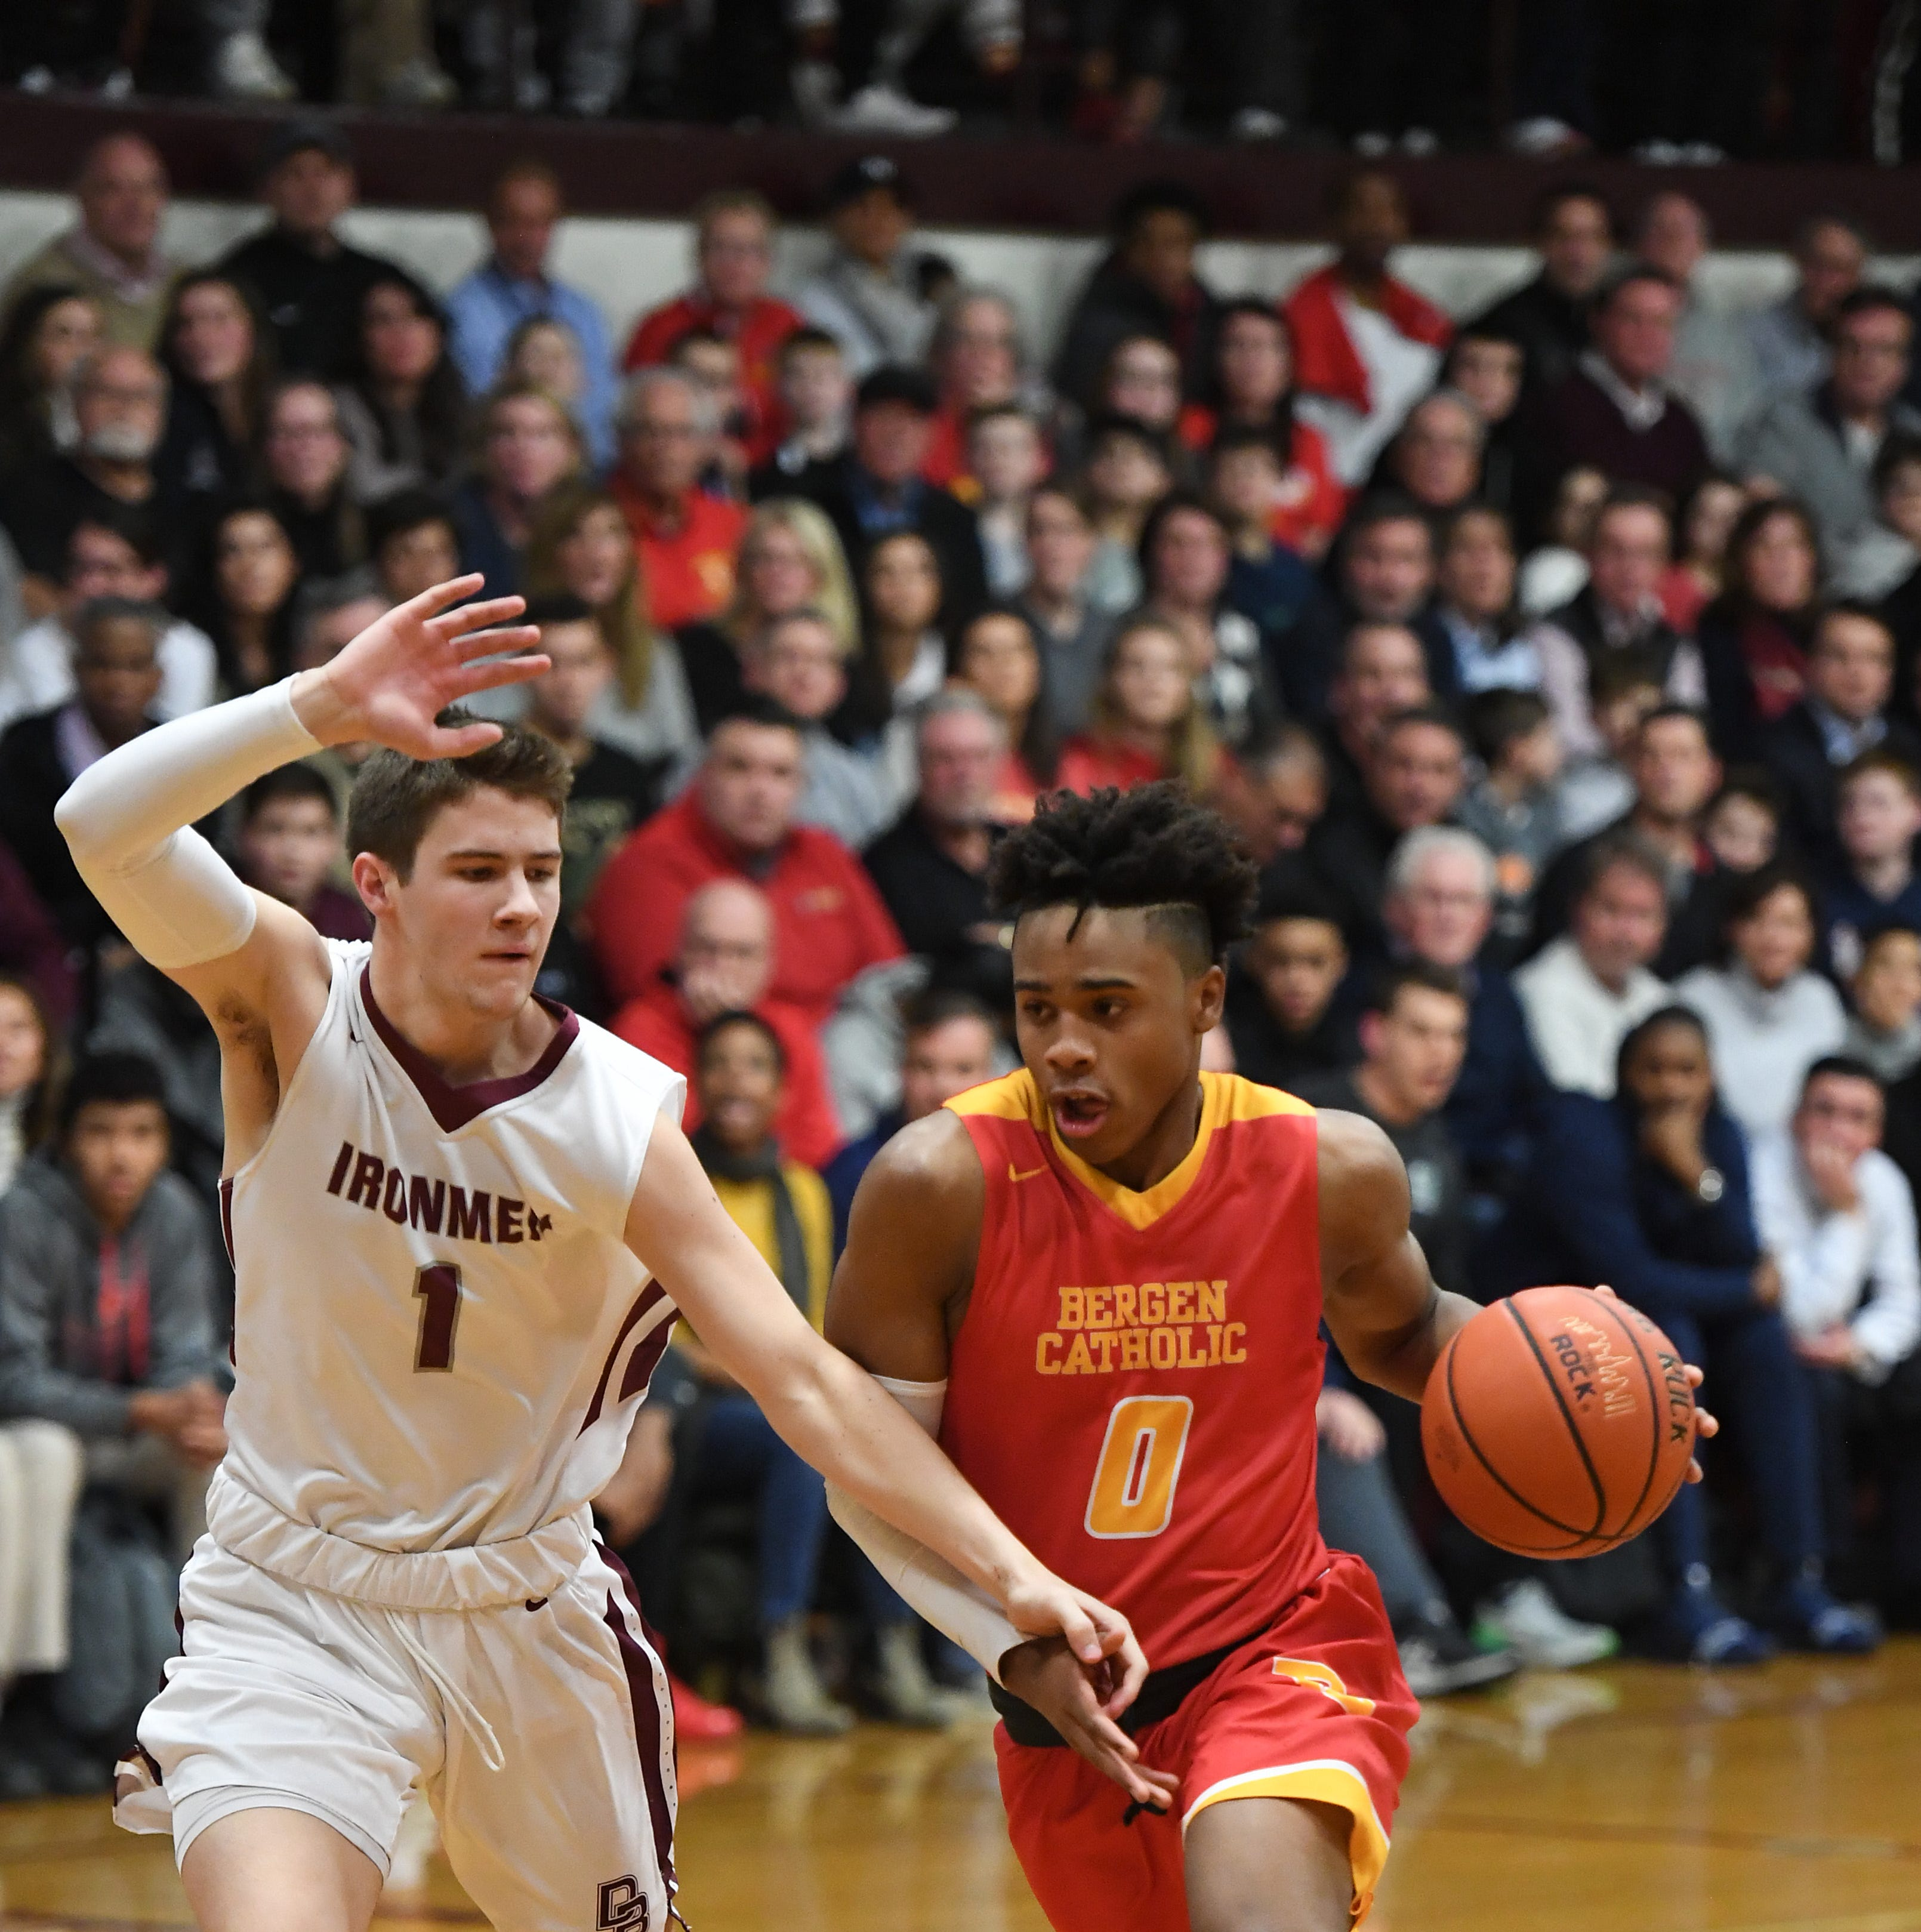 Boys basketball: Best of the week, Top 25 rankings, big performances, key matchups